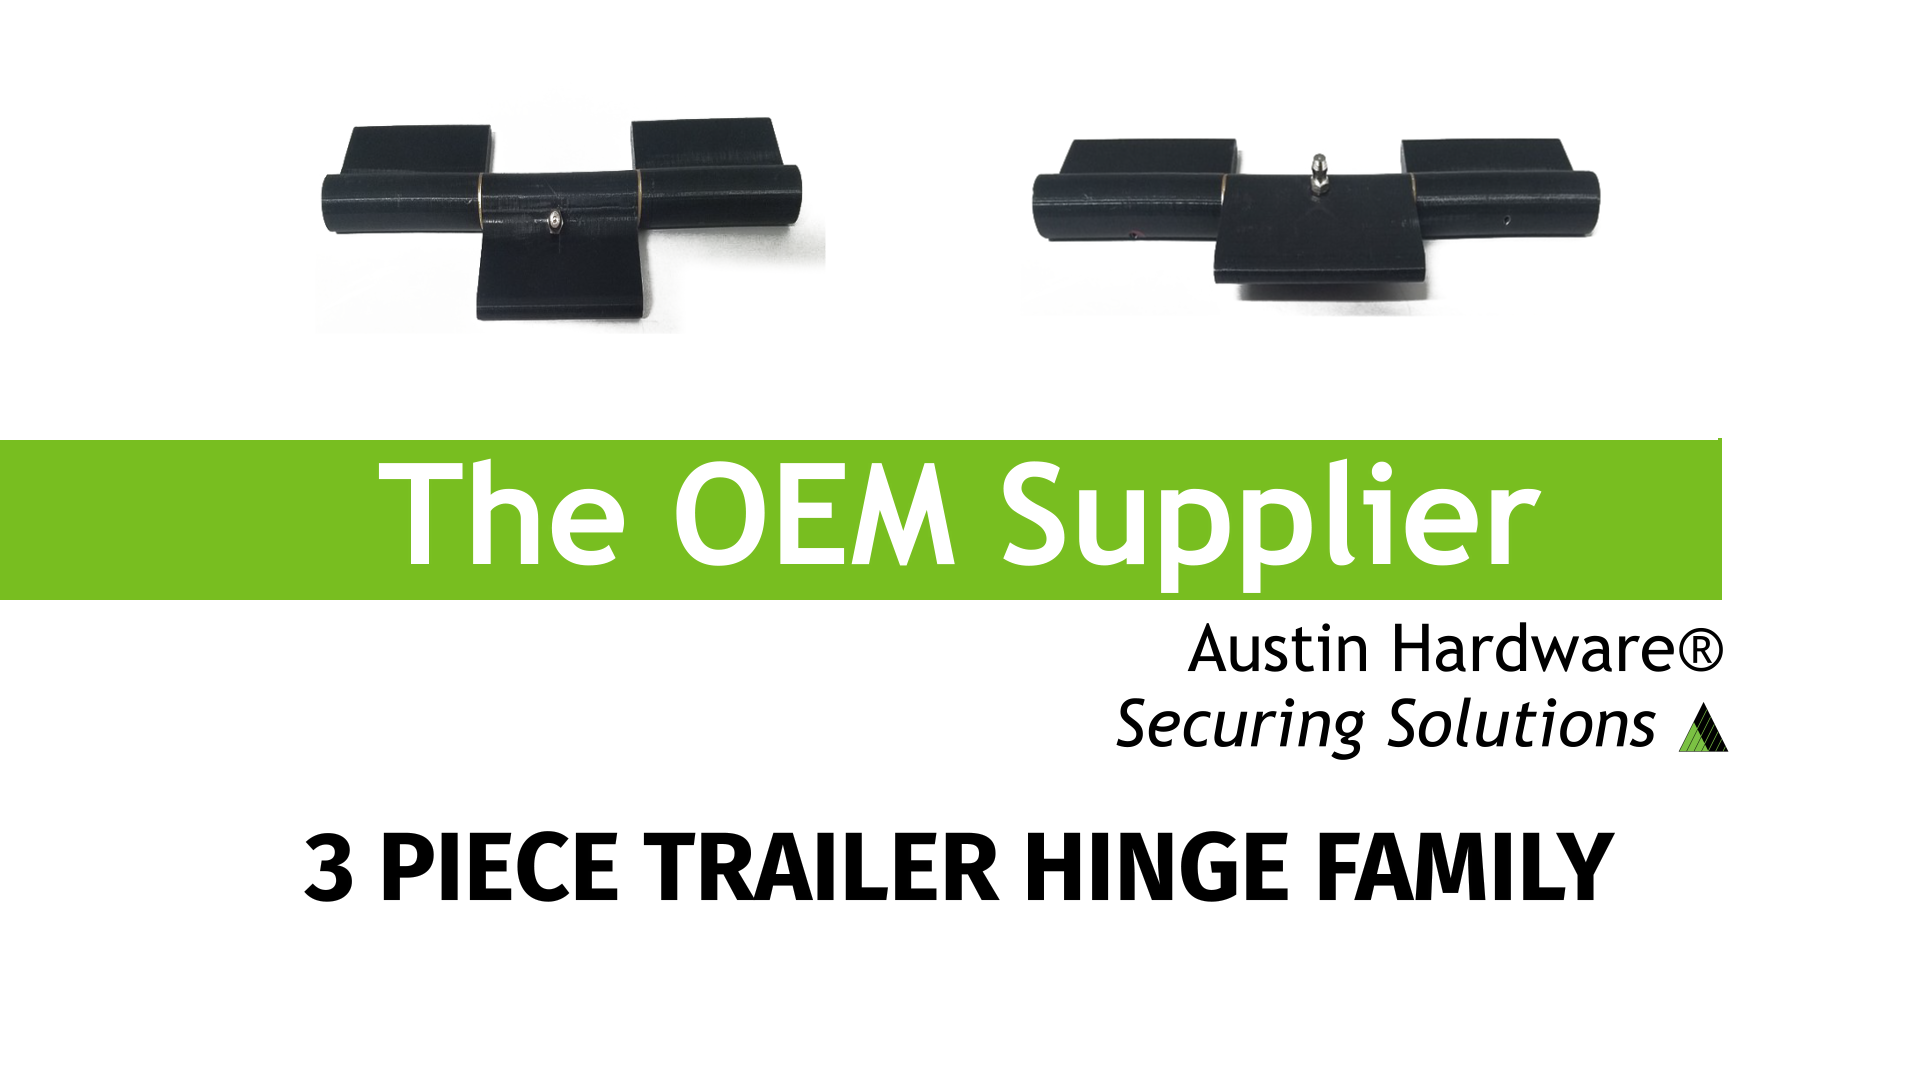 3 Piece Trailer Hinge Family - Austin Hardware®